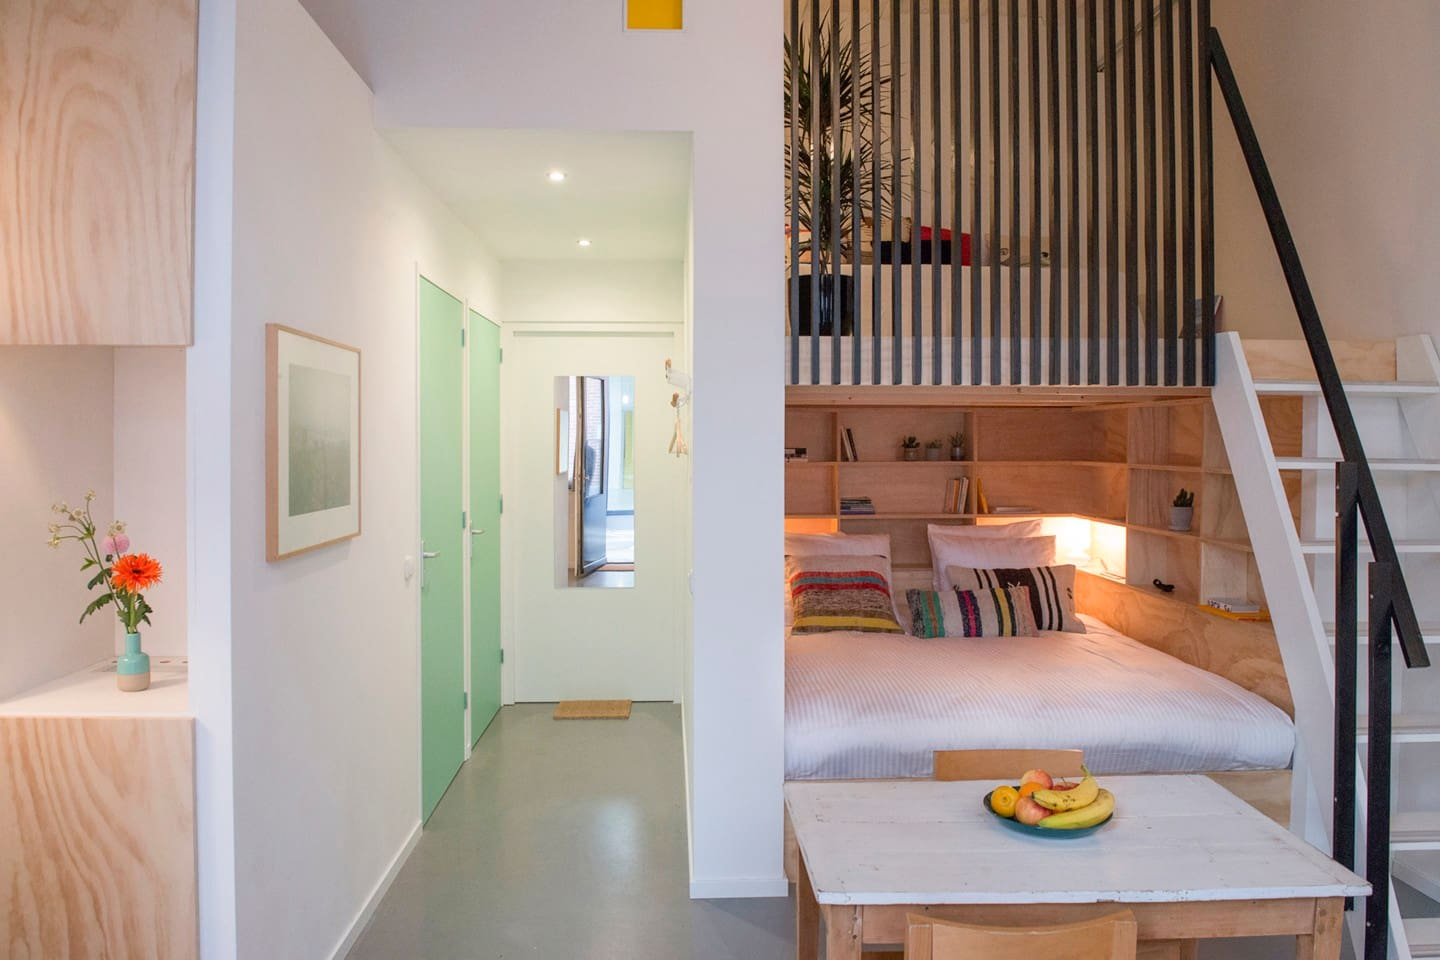 Welcome to the NachtMuseum, a cozy mini-loft in a converted industrial space, for 1-4 people